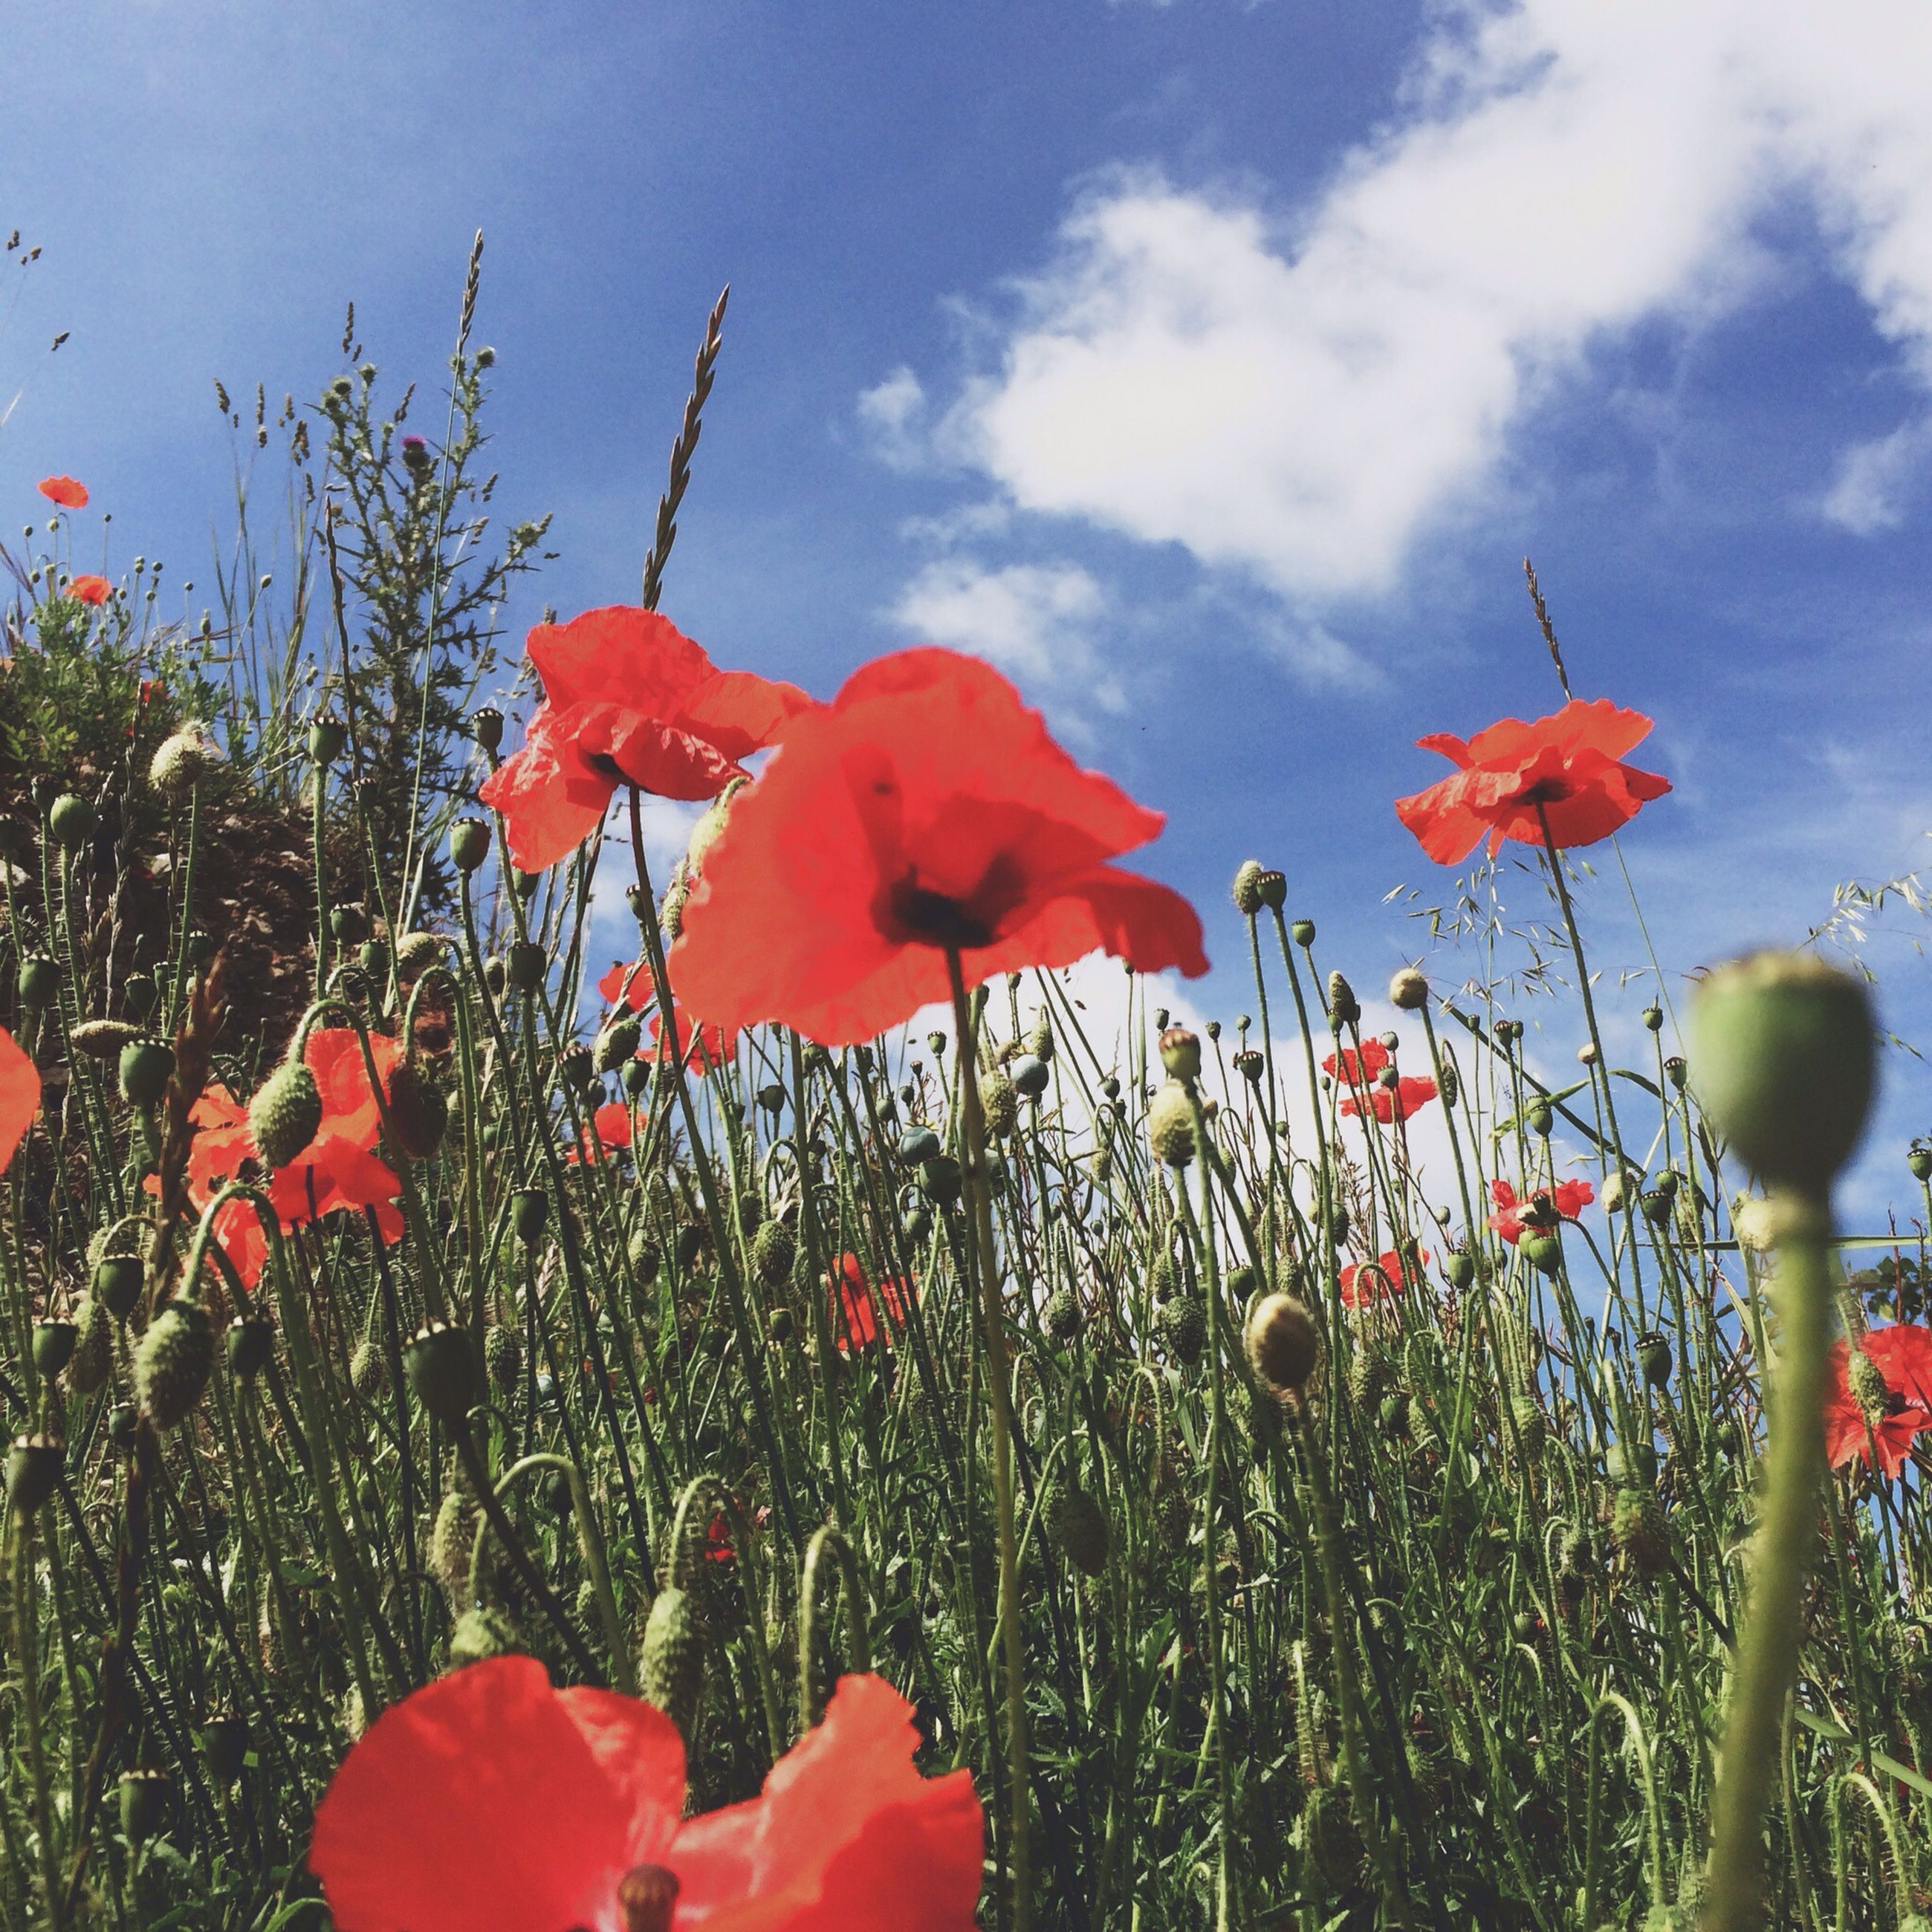 flower, red, freshness, fragility, growth, petal, poppy, beauty in nature, plant, sky, nature, flower head, blooming, field, leaf, cloud - sky, stem, day, close-up, in bloom